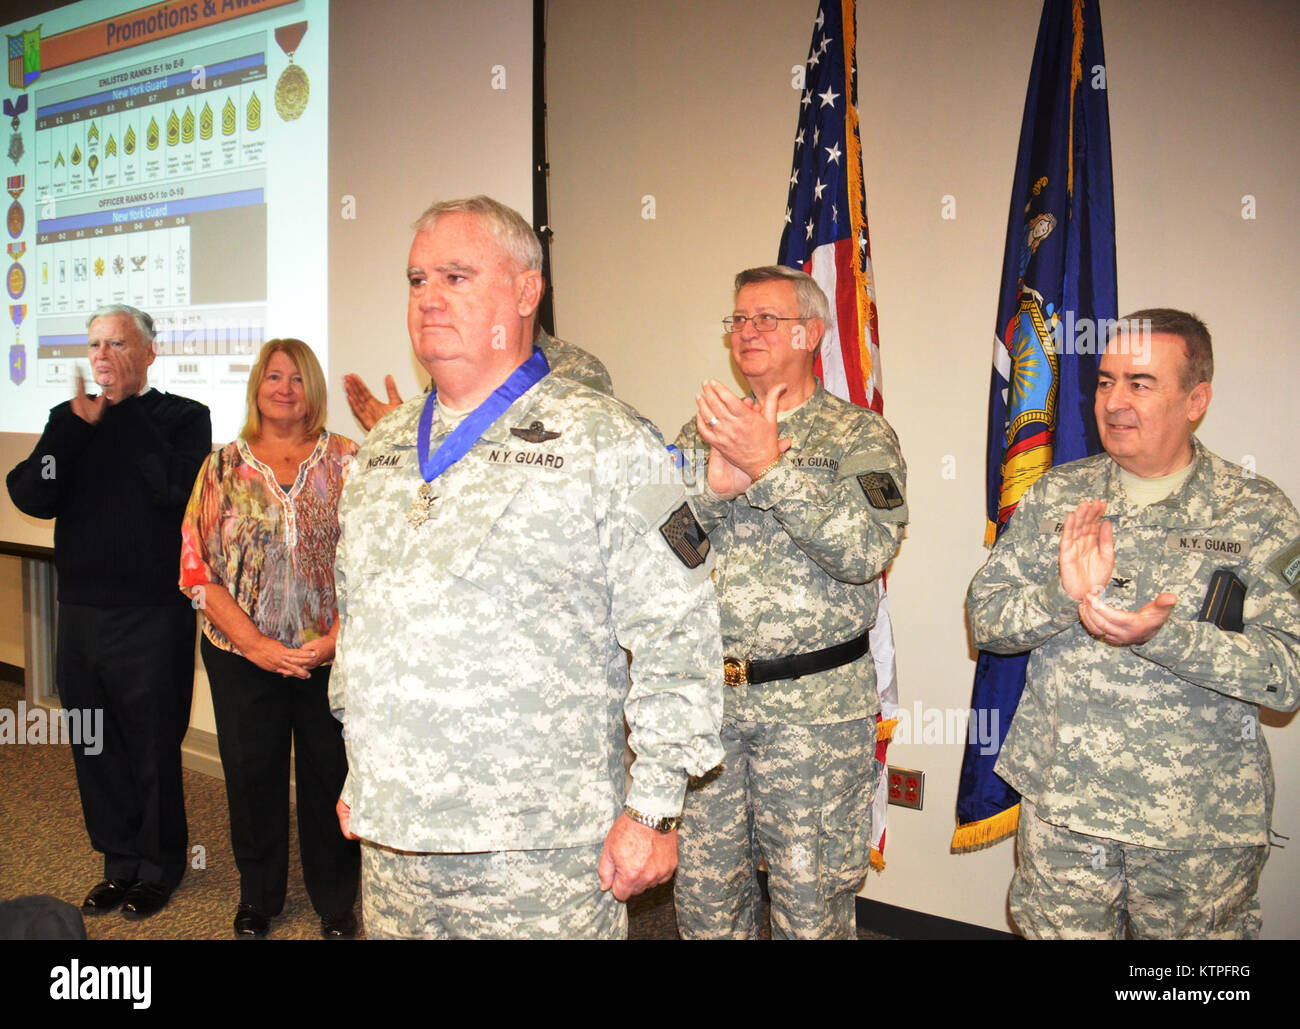 CORTLANDT MANOR, N.Y- On Saturday, March 14, at New York State's Division of Military and Naval Affairs Camp Smith Stock Photo